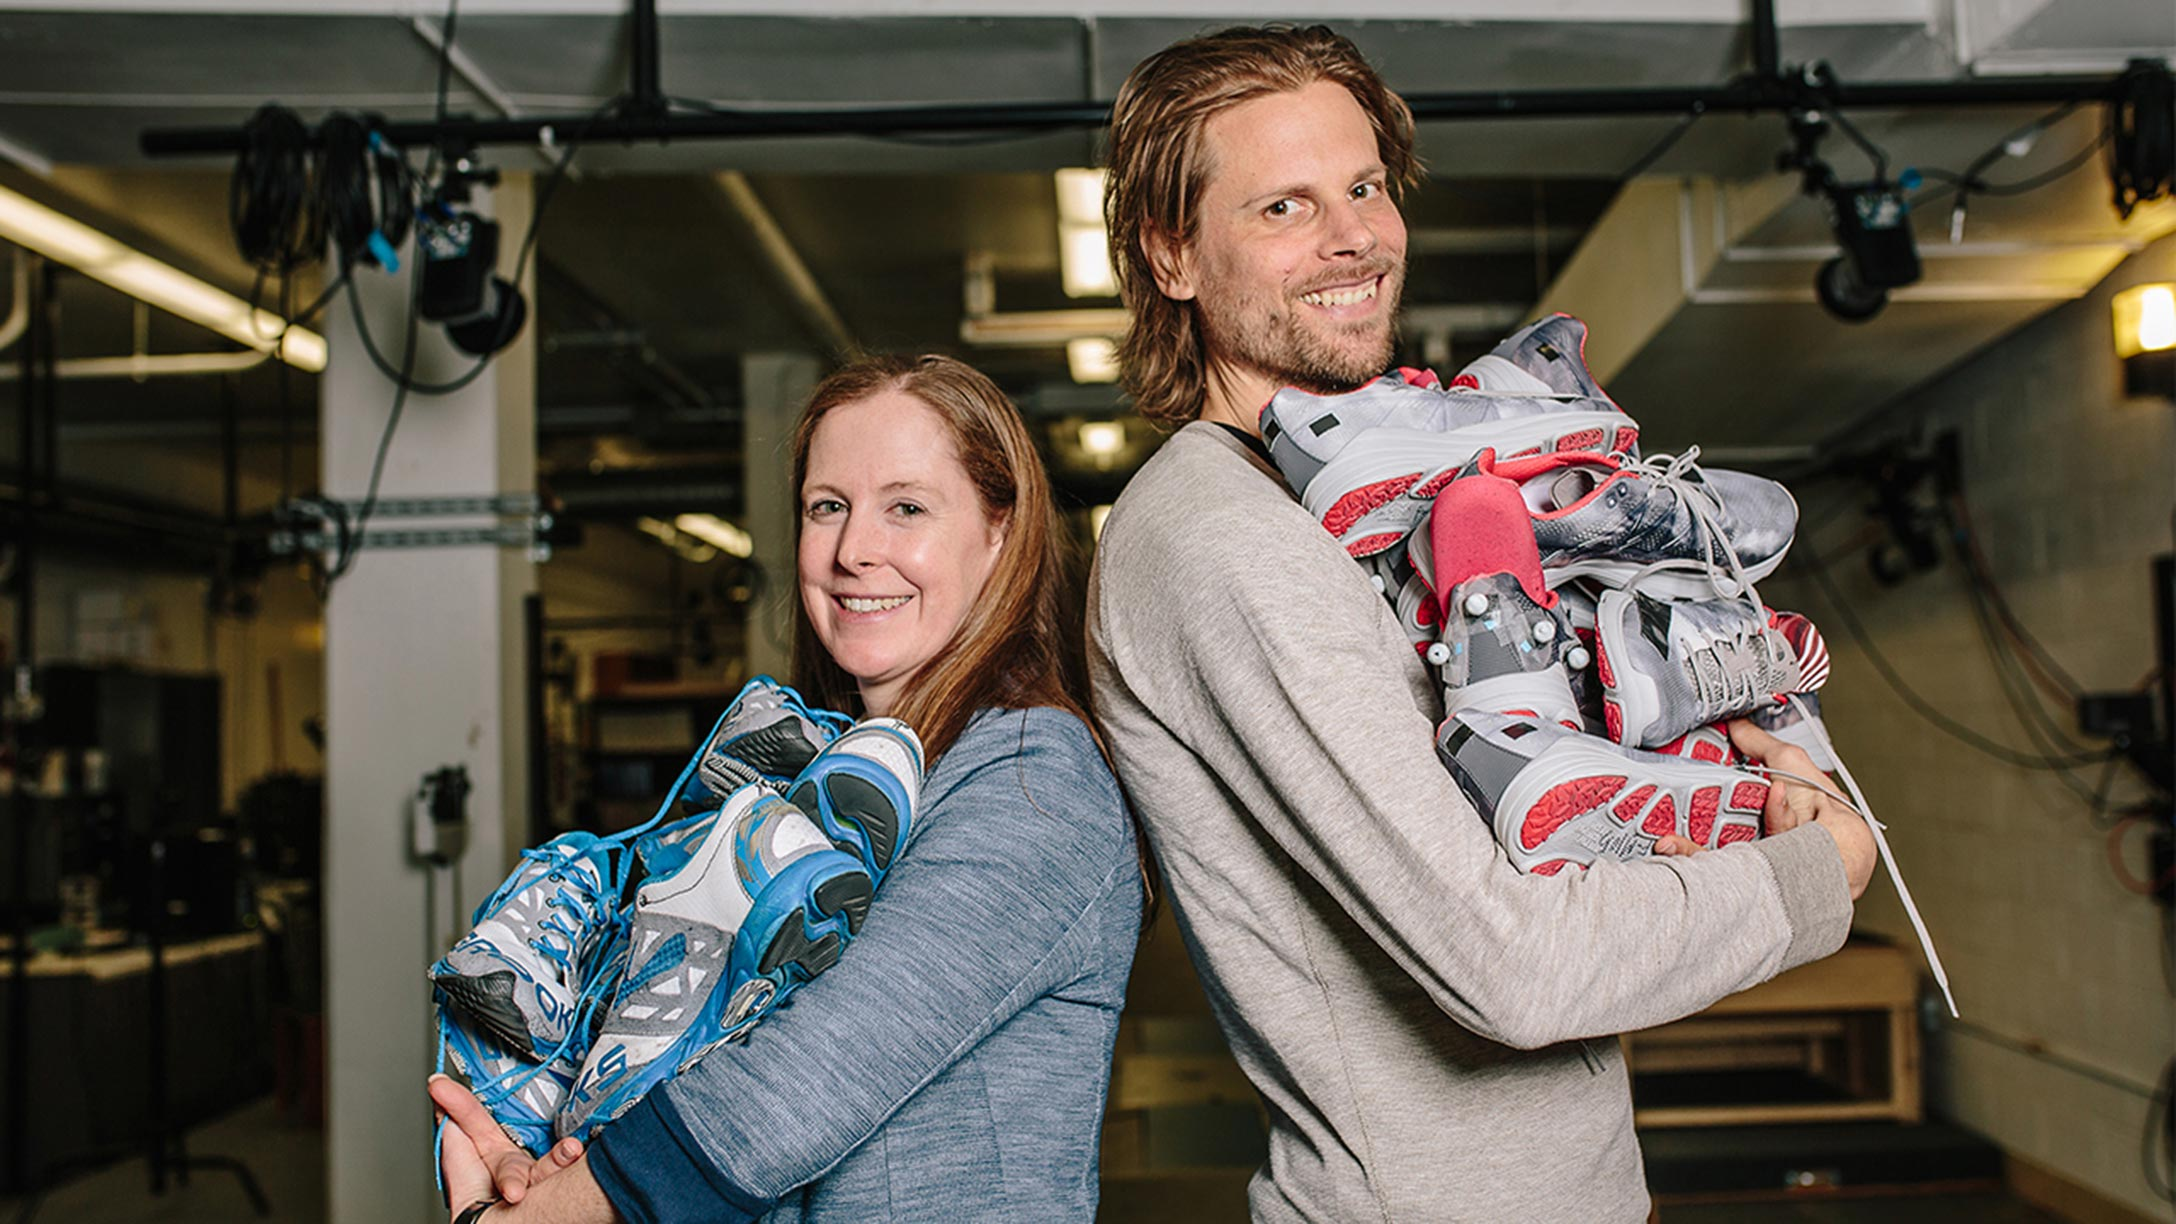 Professors Katherine Boyer and Wooter Hoogkamer of the Kinesiology lab stand back to back, each holding a large pile of athletic shoes from the testing lab.